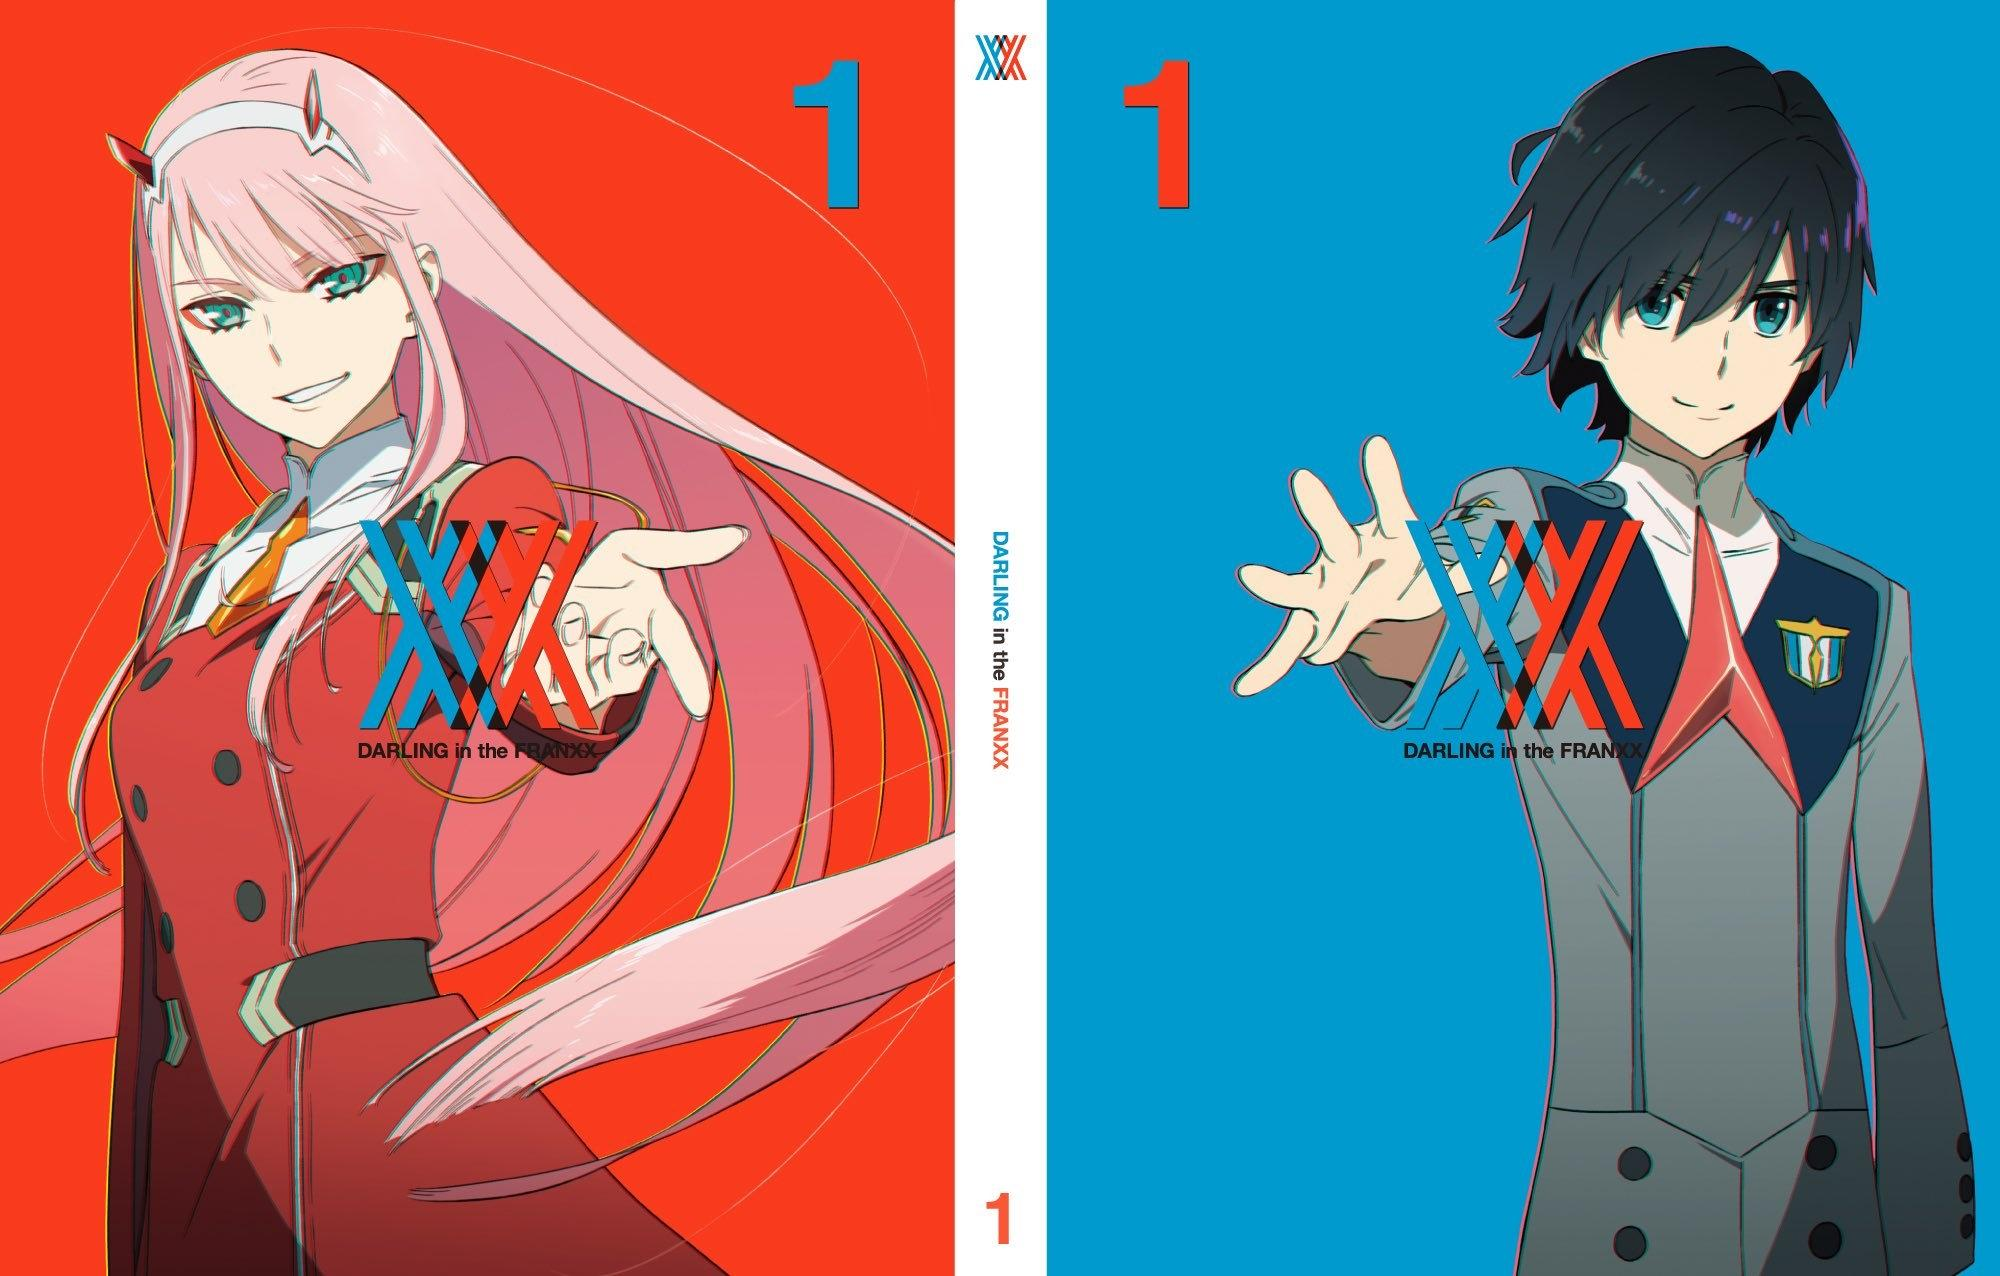 Darling in the Franxx(2018)[BDRIP][1920x1080][TV24+menu8+SP5+Yokoku24][x264_m4a][10bit]加刘景长压制